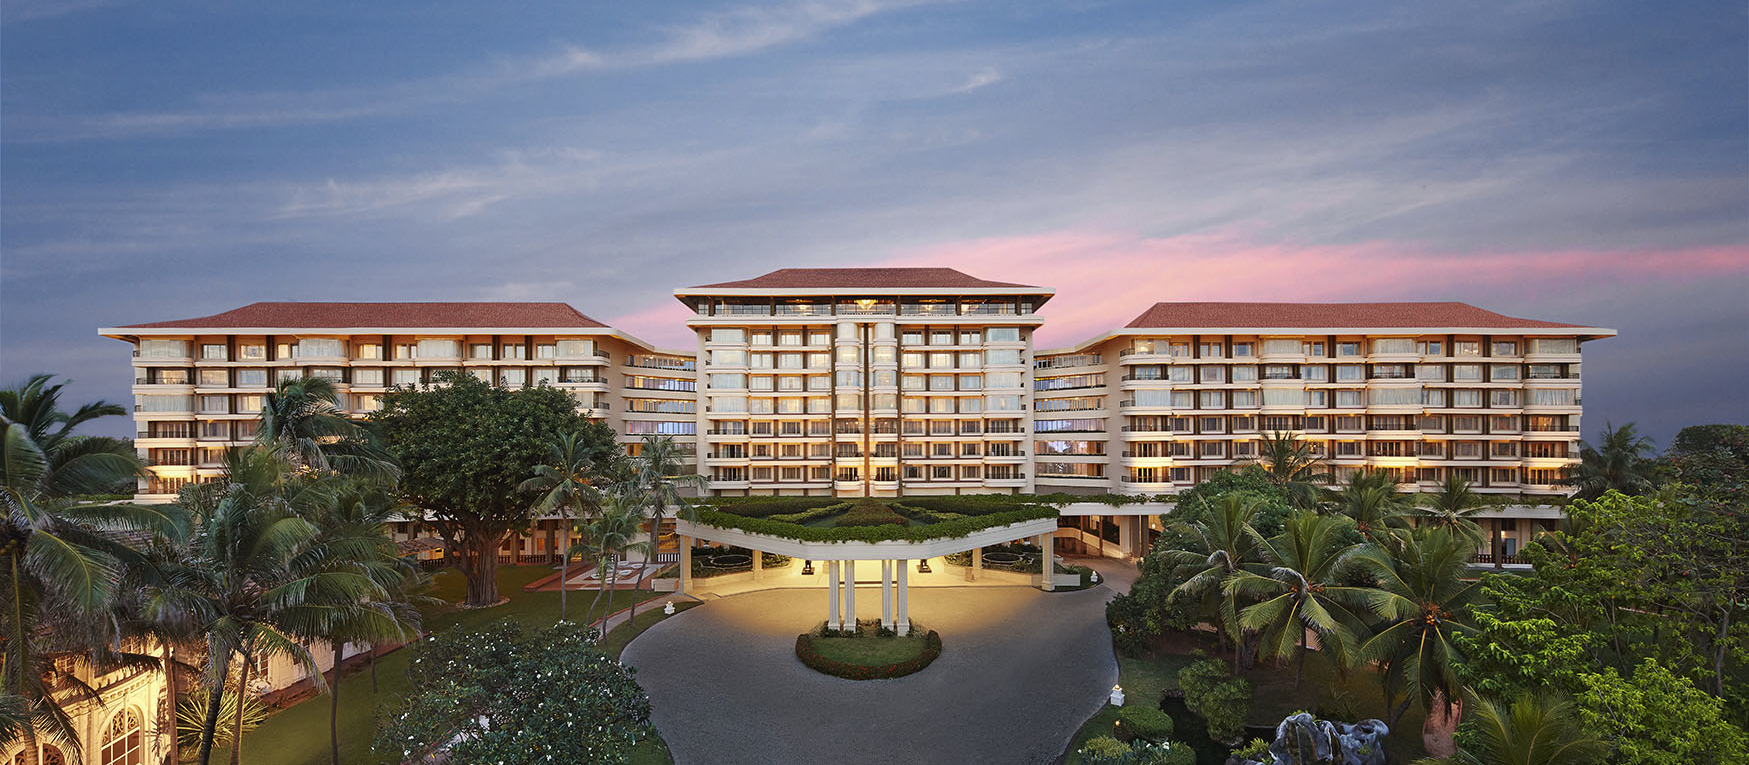 Luxury Hotel in Sri Lanka - Taj Samudra